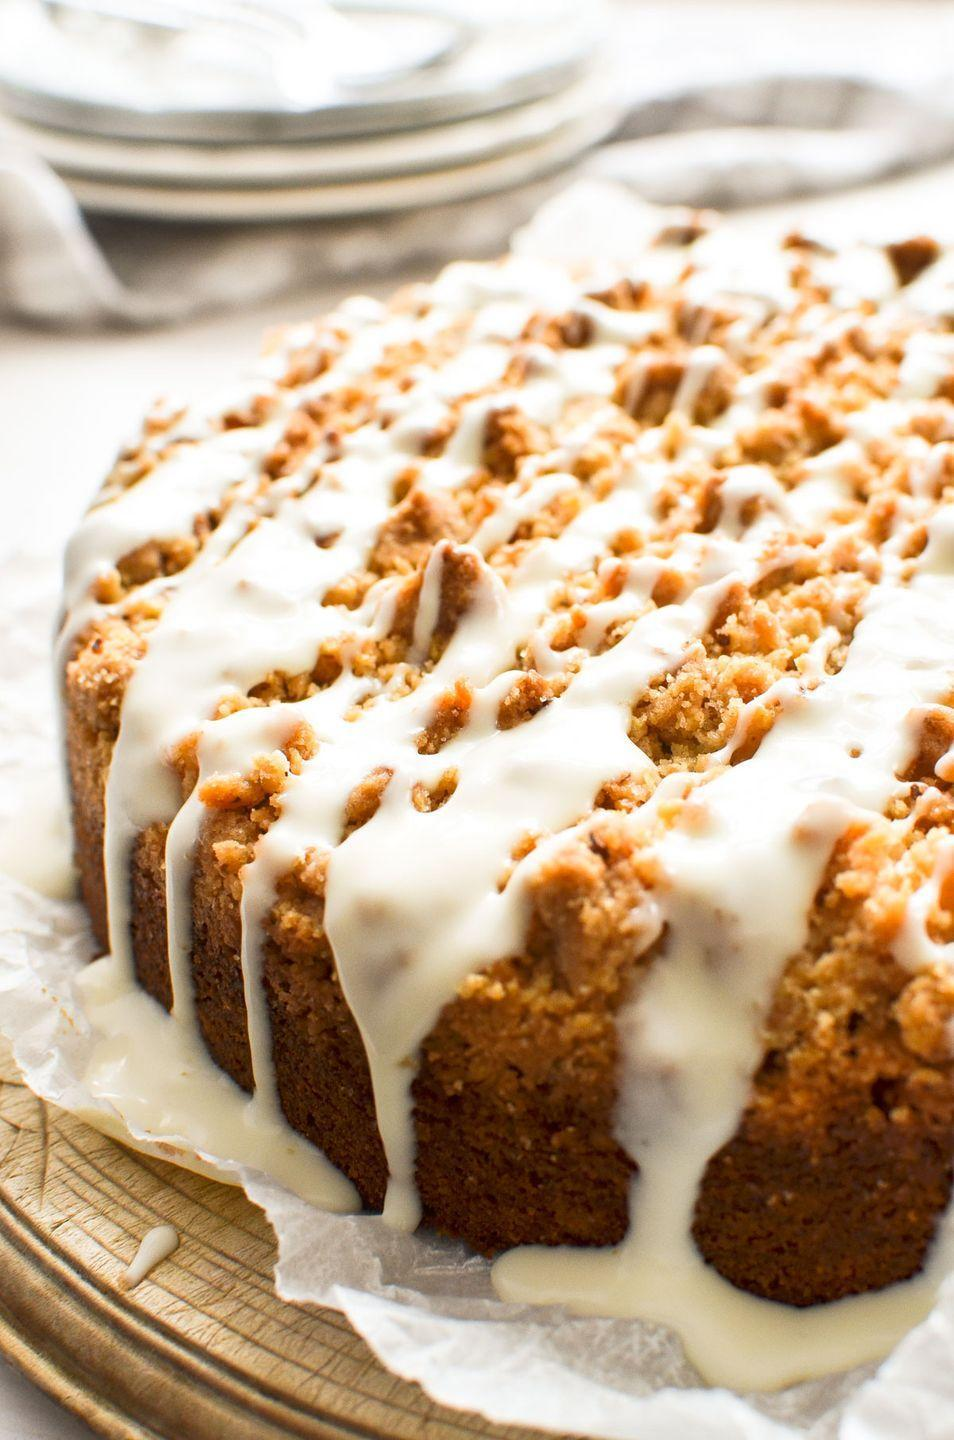 """<p>Get the <a href=""""https://theviewfromgreatisland.com/carrot-coffee-cake-recipe/"""" rel=""""nofollow noopener"""" target=""""_blank"""" data-ylk=""""slk:Carrot Coffee Cake with Cream Cheese Glaze"""" class=""""link rapid-noclick-resp"""">Carrot Coffee Cake with Cream Cheese Glaze</a> recipe.</p><p>Recipe from <a href=""""https://theviewfromgreatisland.com/"""" rel=""""nofollow noopener"""" target=""""_blank"""" data-ylk=""""slk:A View From Great Island"""" class=""""link rapid-noclick-resp"""">A View From Great Island</a>. </p>"""